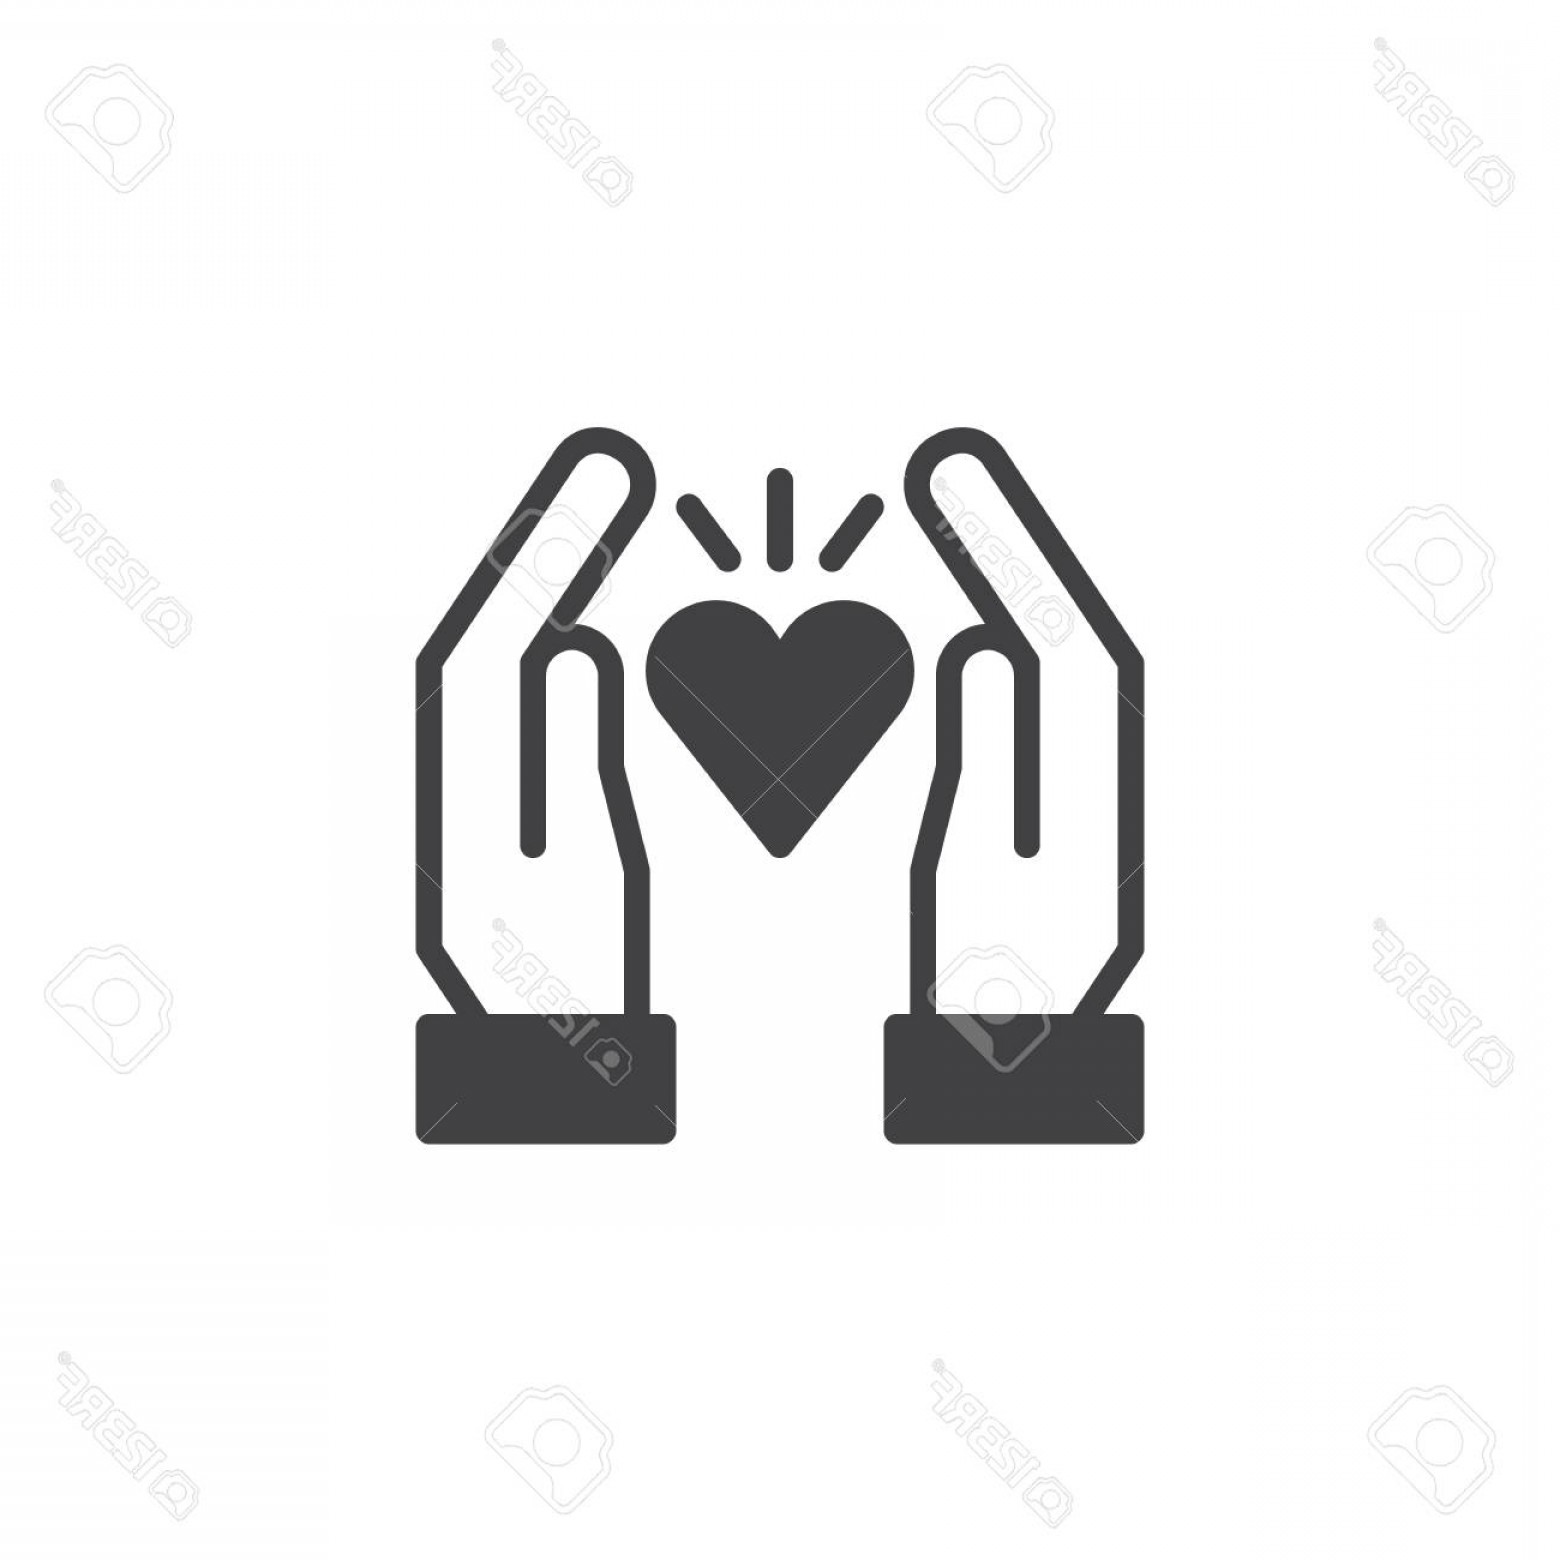 Solid Heart Vector Drawing: Photostock Vector Hands Hold Heart Vector Icon Love Filled Flat Sign For Mobile Concept And Web Design Heart In Hands